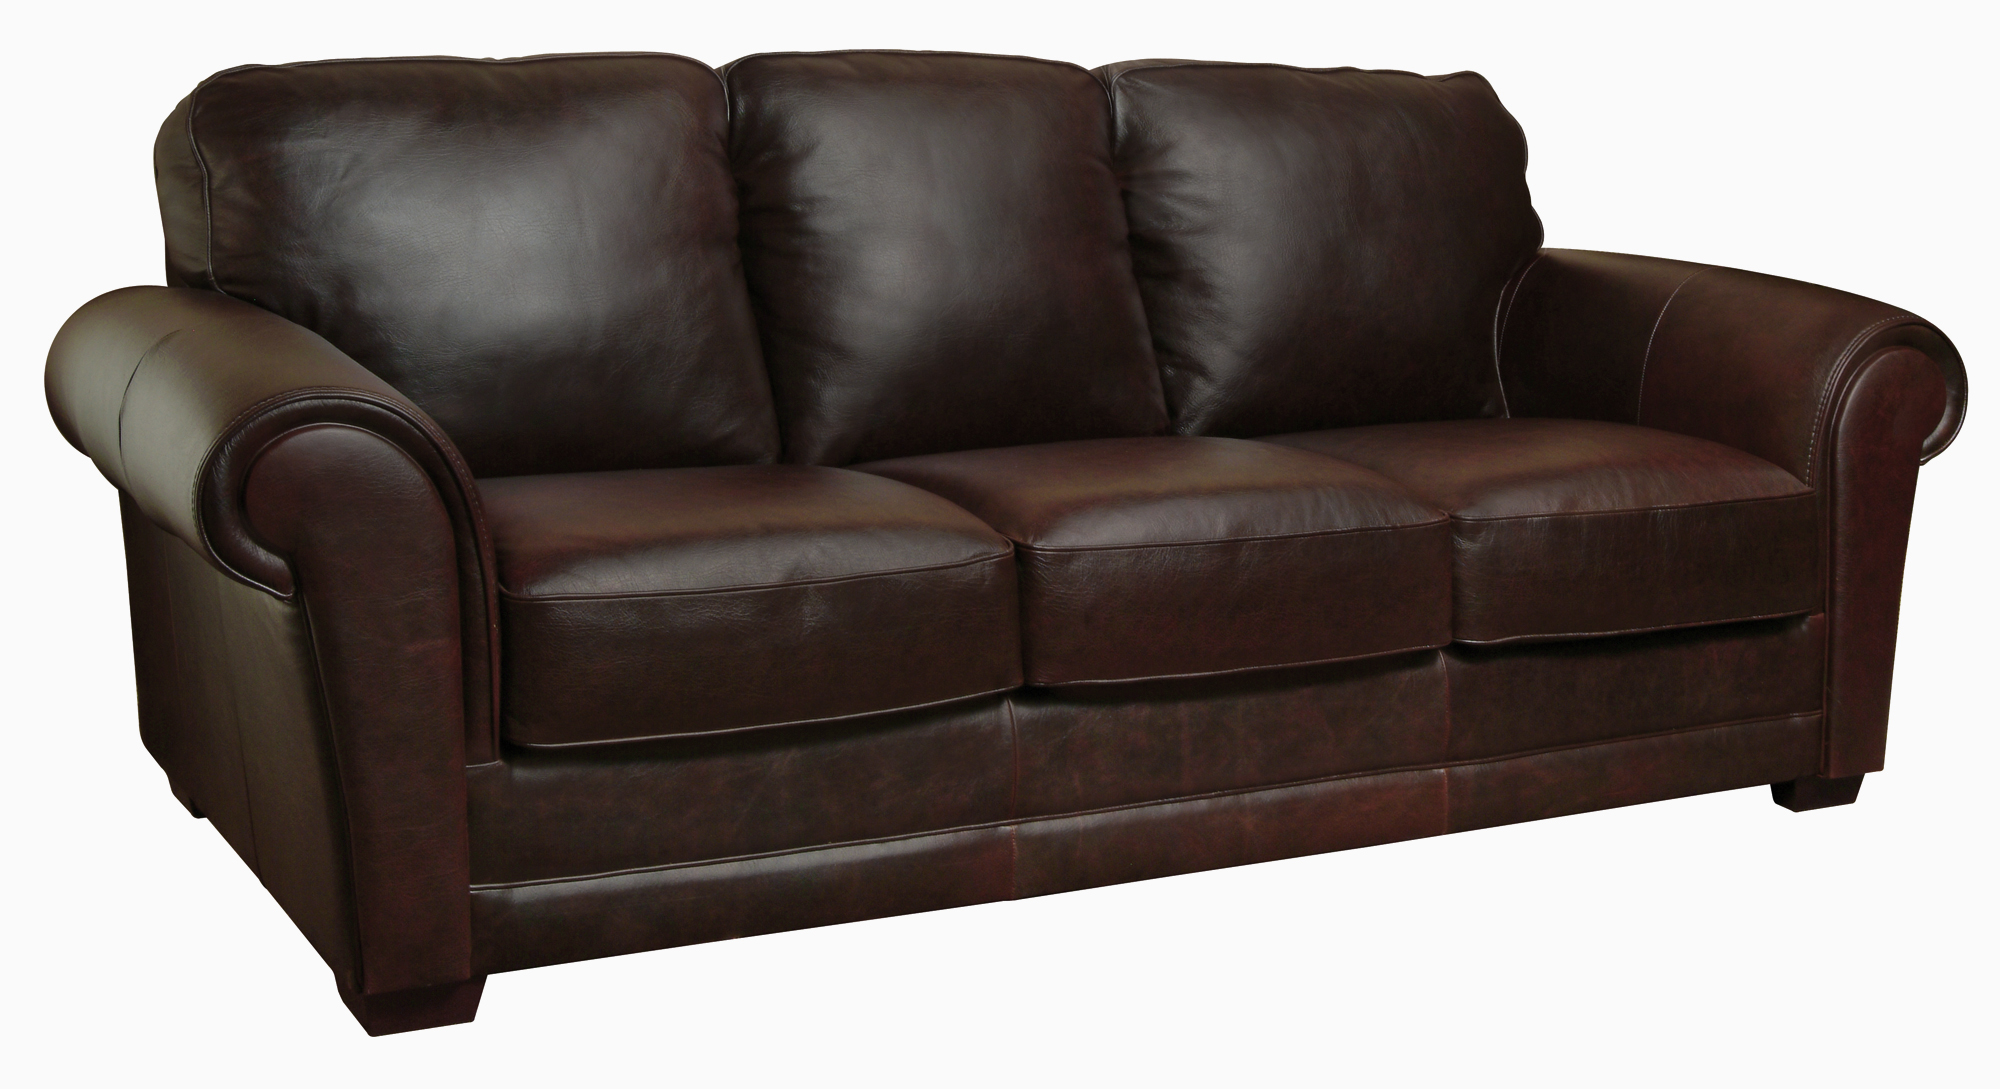 New luke leather mark italian leather distressed for Furniture leather sofa